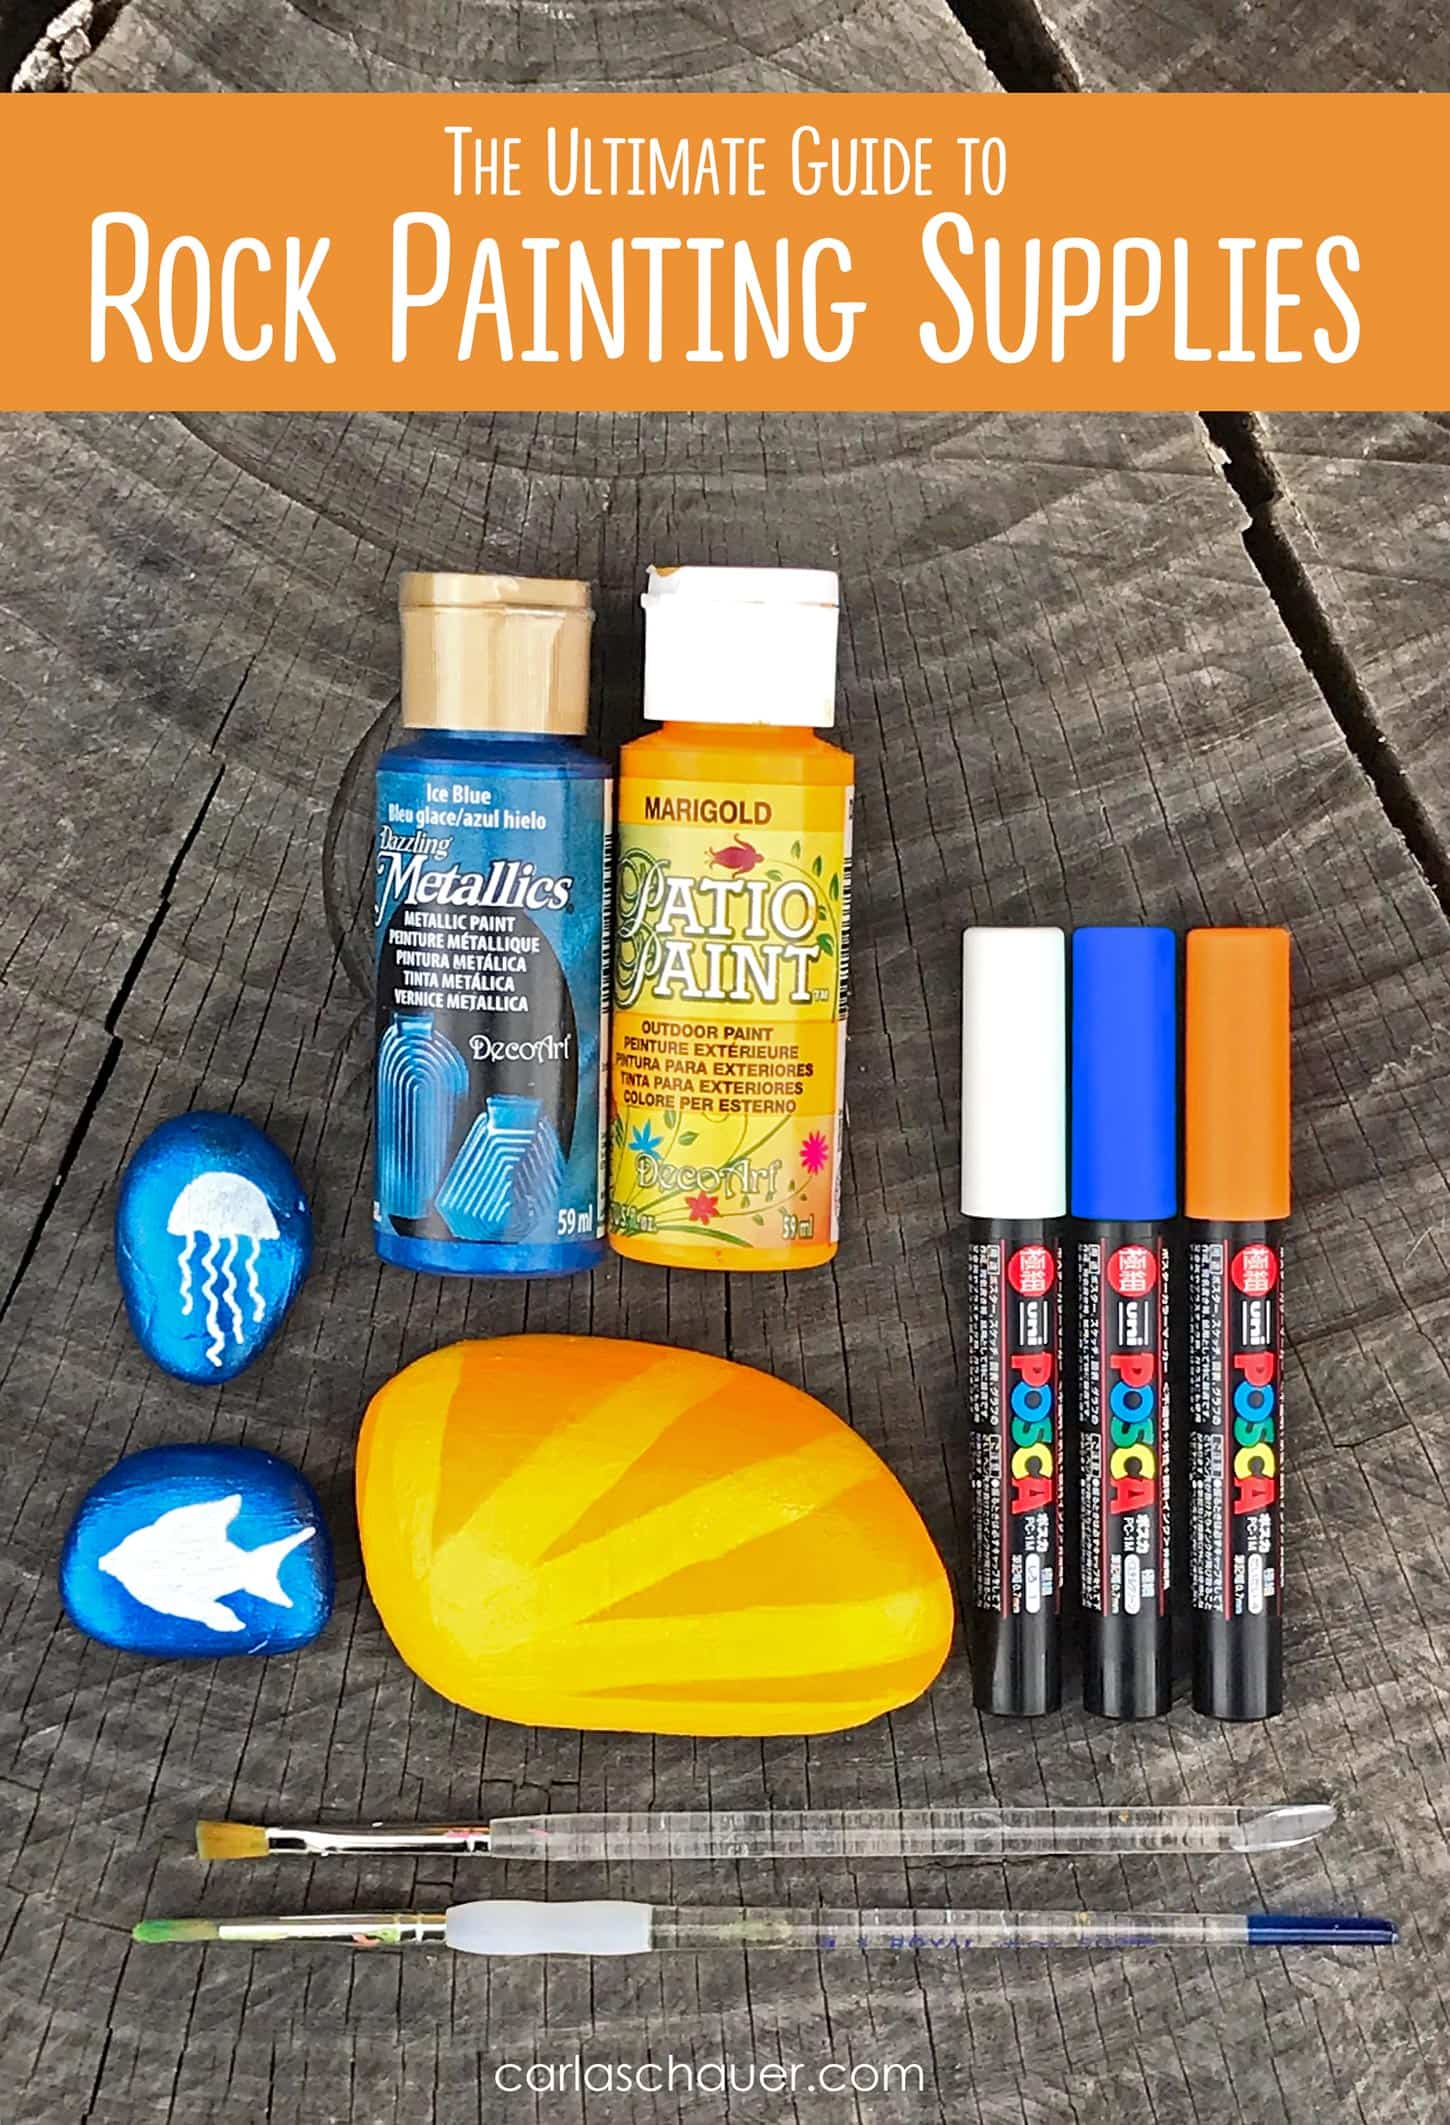 I was looking for this! | The ultimate guide to the best supplies for painting rocks. Paints, pens, tools, sealers, and more. | Click for the entire rock painting supplies guide at carlaschauer.com #easypaintedrocks #paintedrockideas #paintedrocks #rockpainting #decoratedrocks #quickcrafts #teencrafts #tweencrafts #rockpaintingsupplies #paintingsupplies #craftsupplies